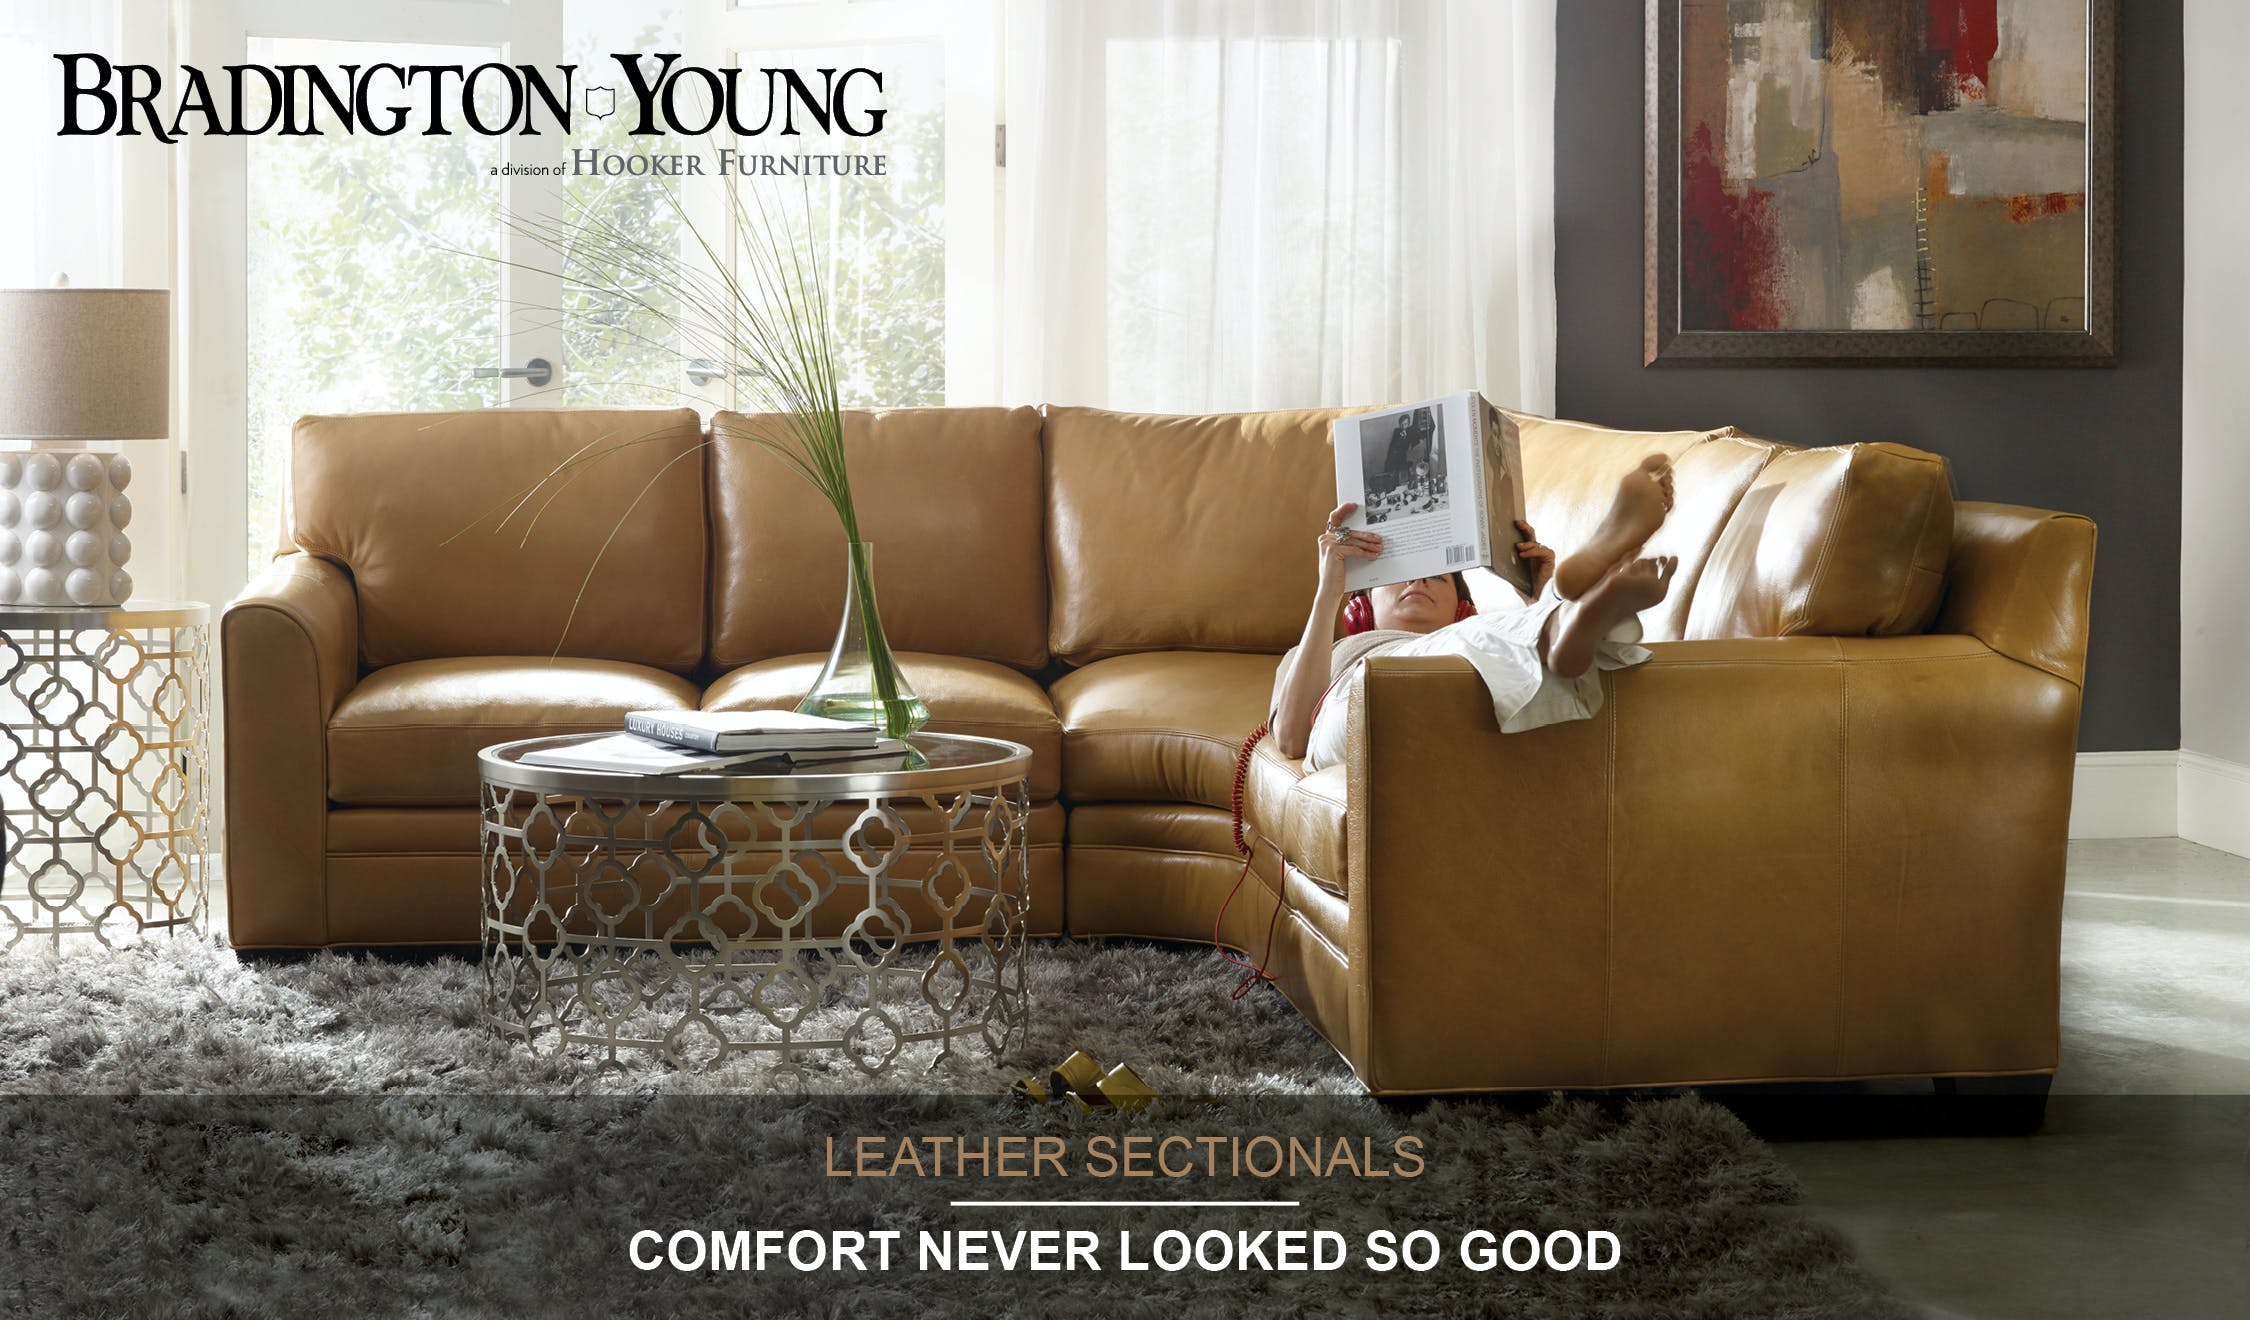 942 brown leather sectional signature ashley furniture - 942 Brown Leather Sectional Signature Ashley Furniture